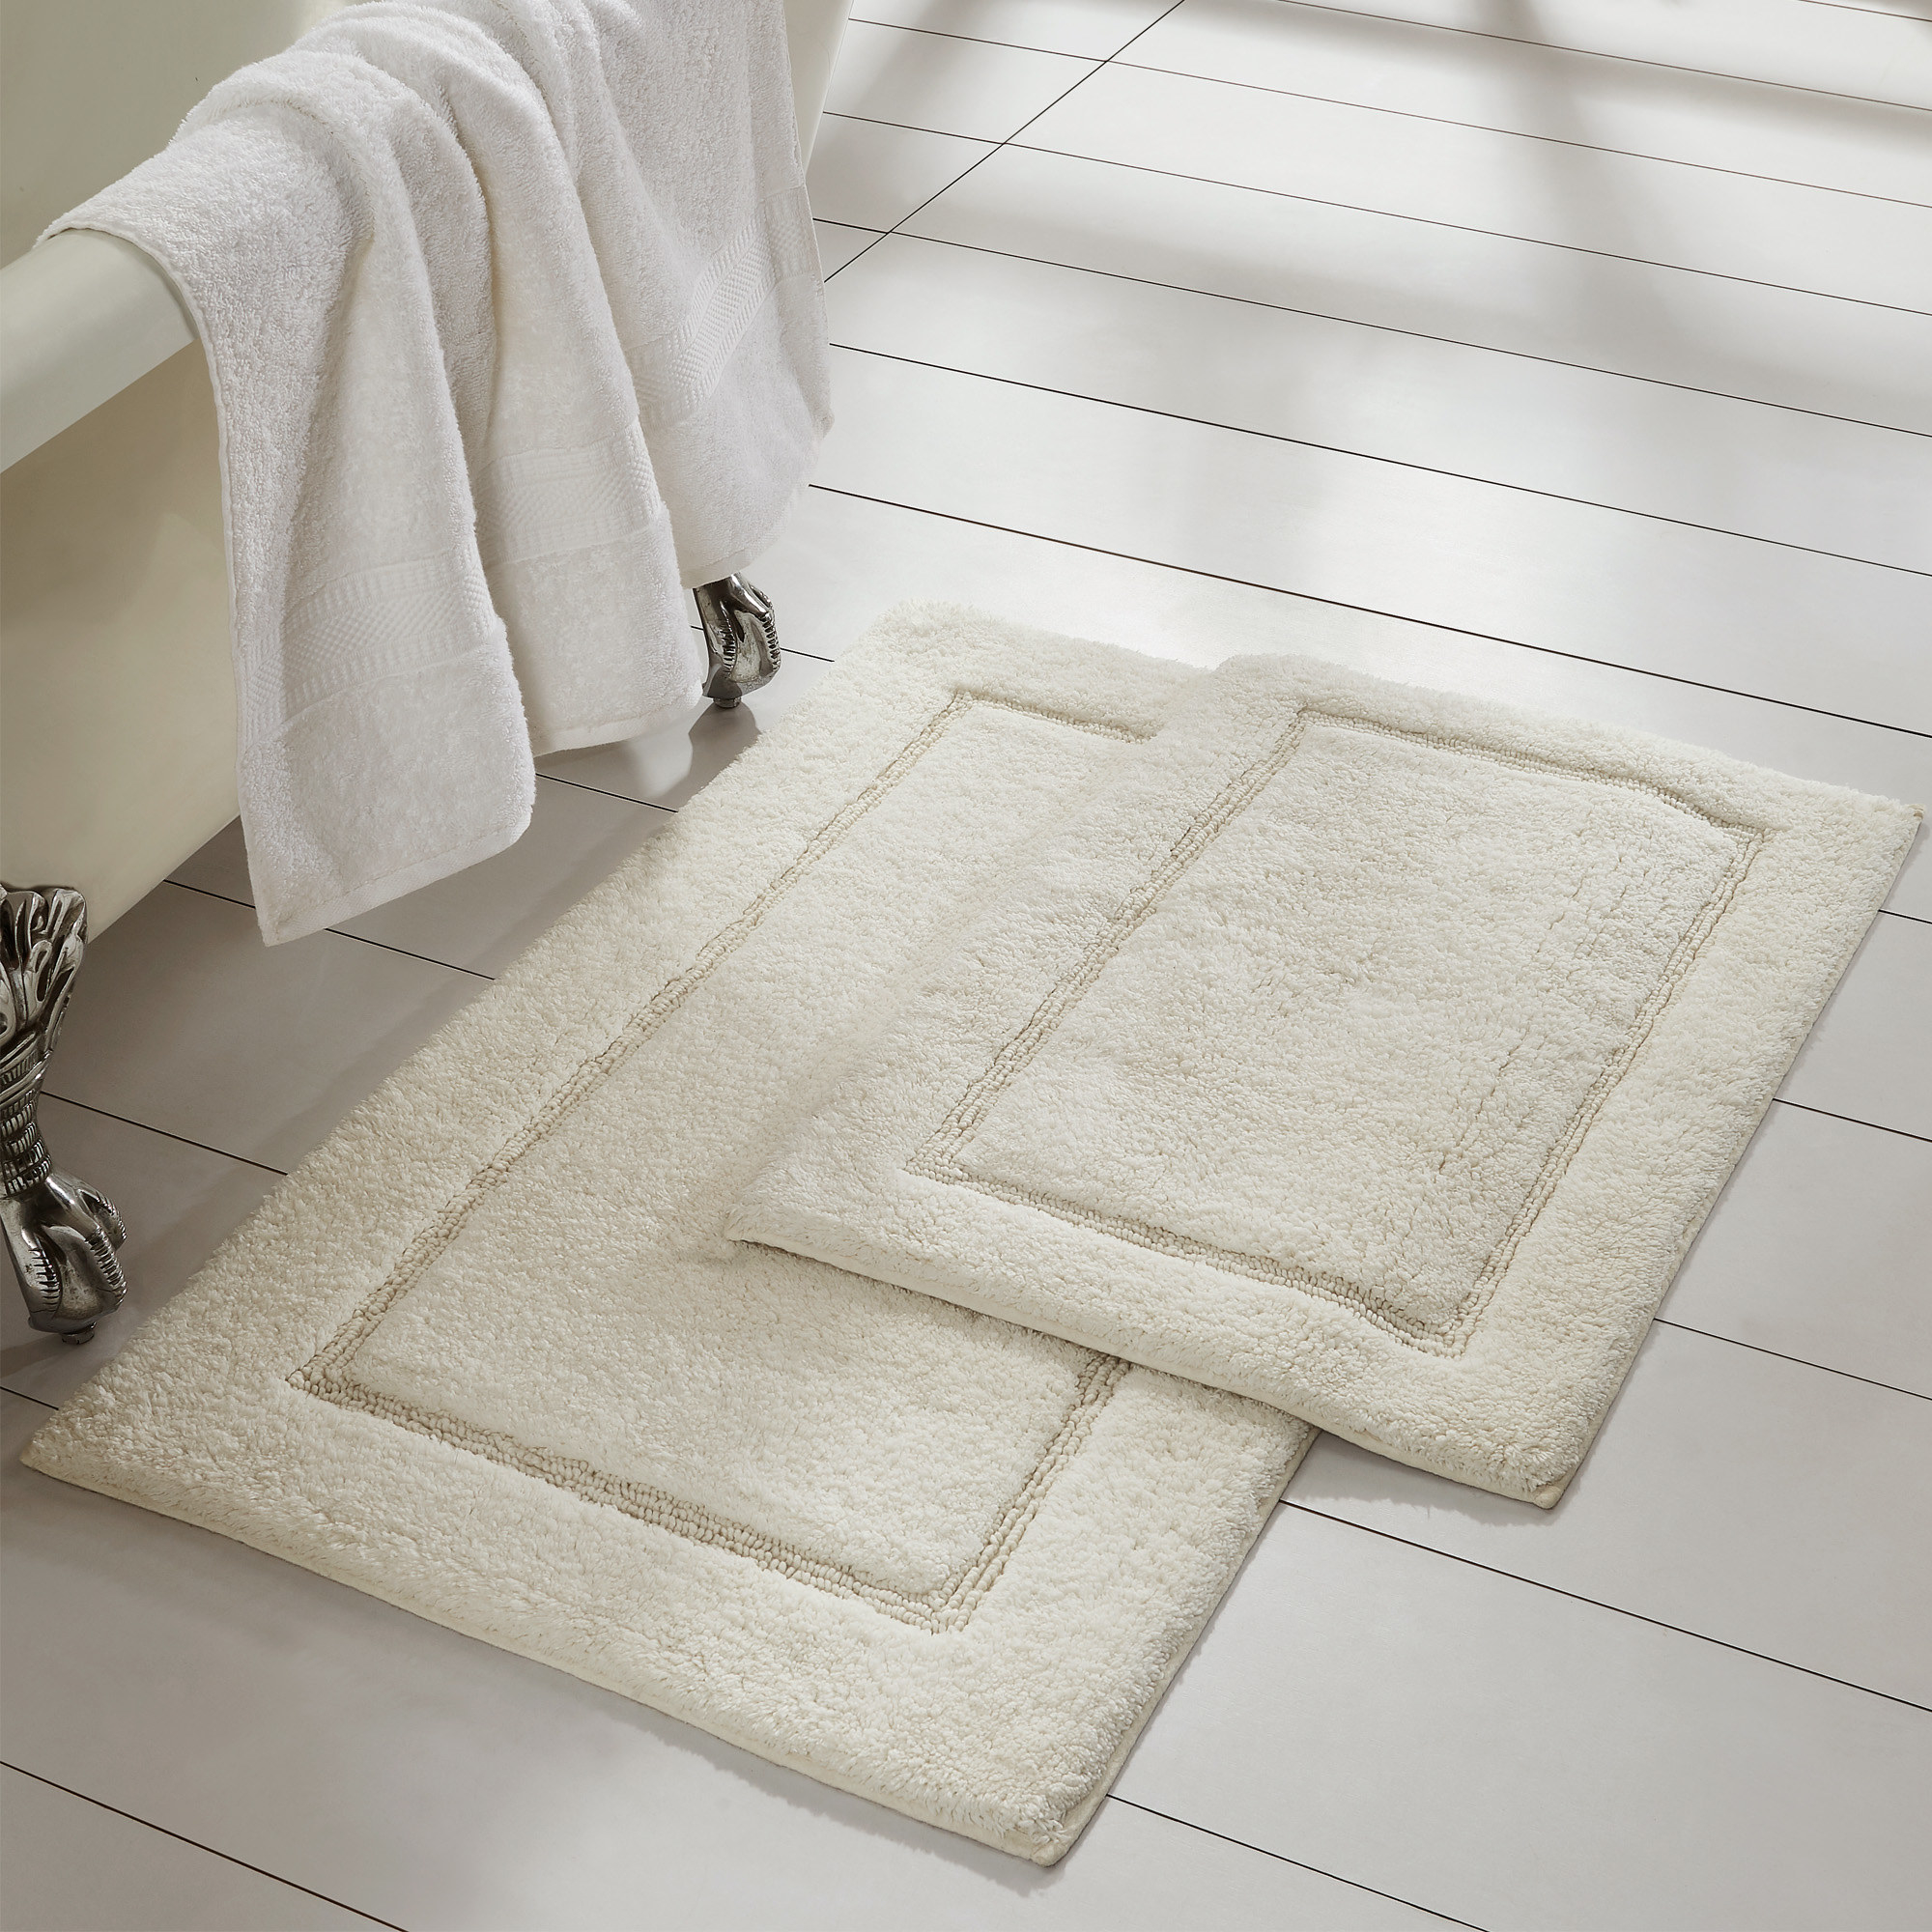 a big and small rug in the color ivory laid out on a bathroom floor